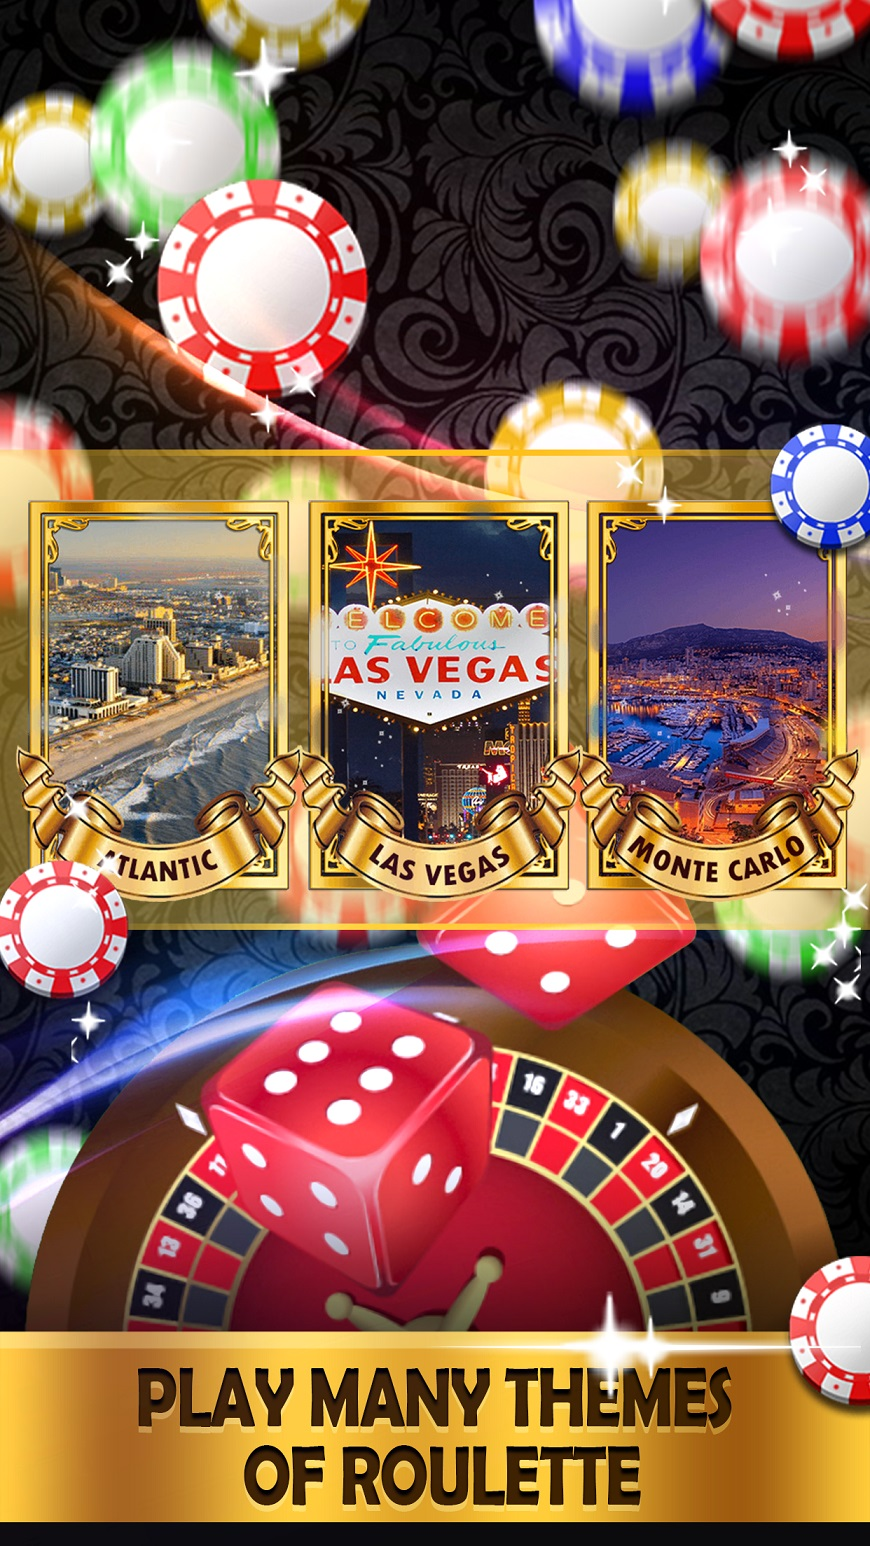 Roulette Royale Deluxe - FREE Vegas Casino Game